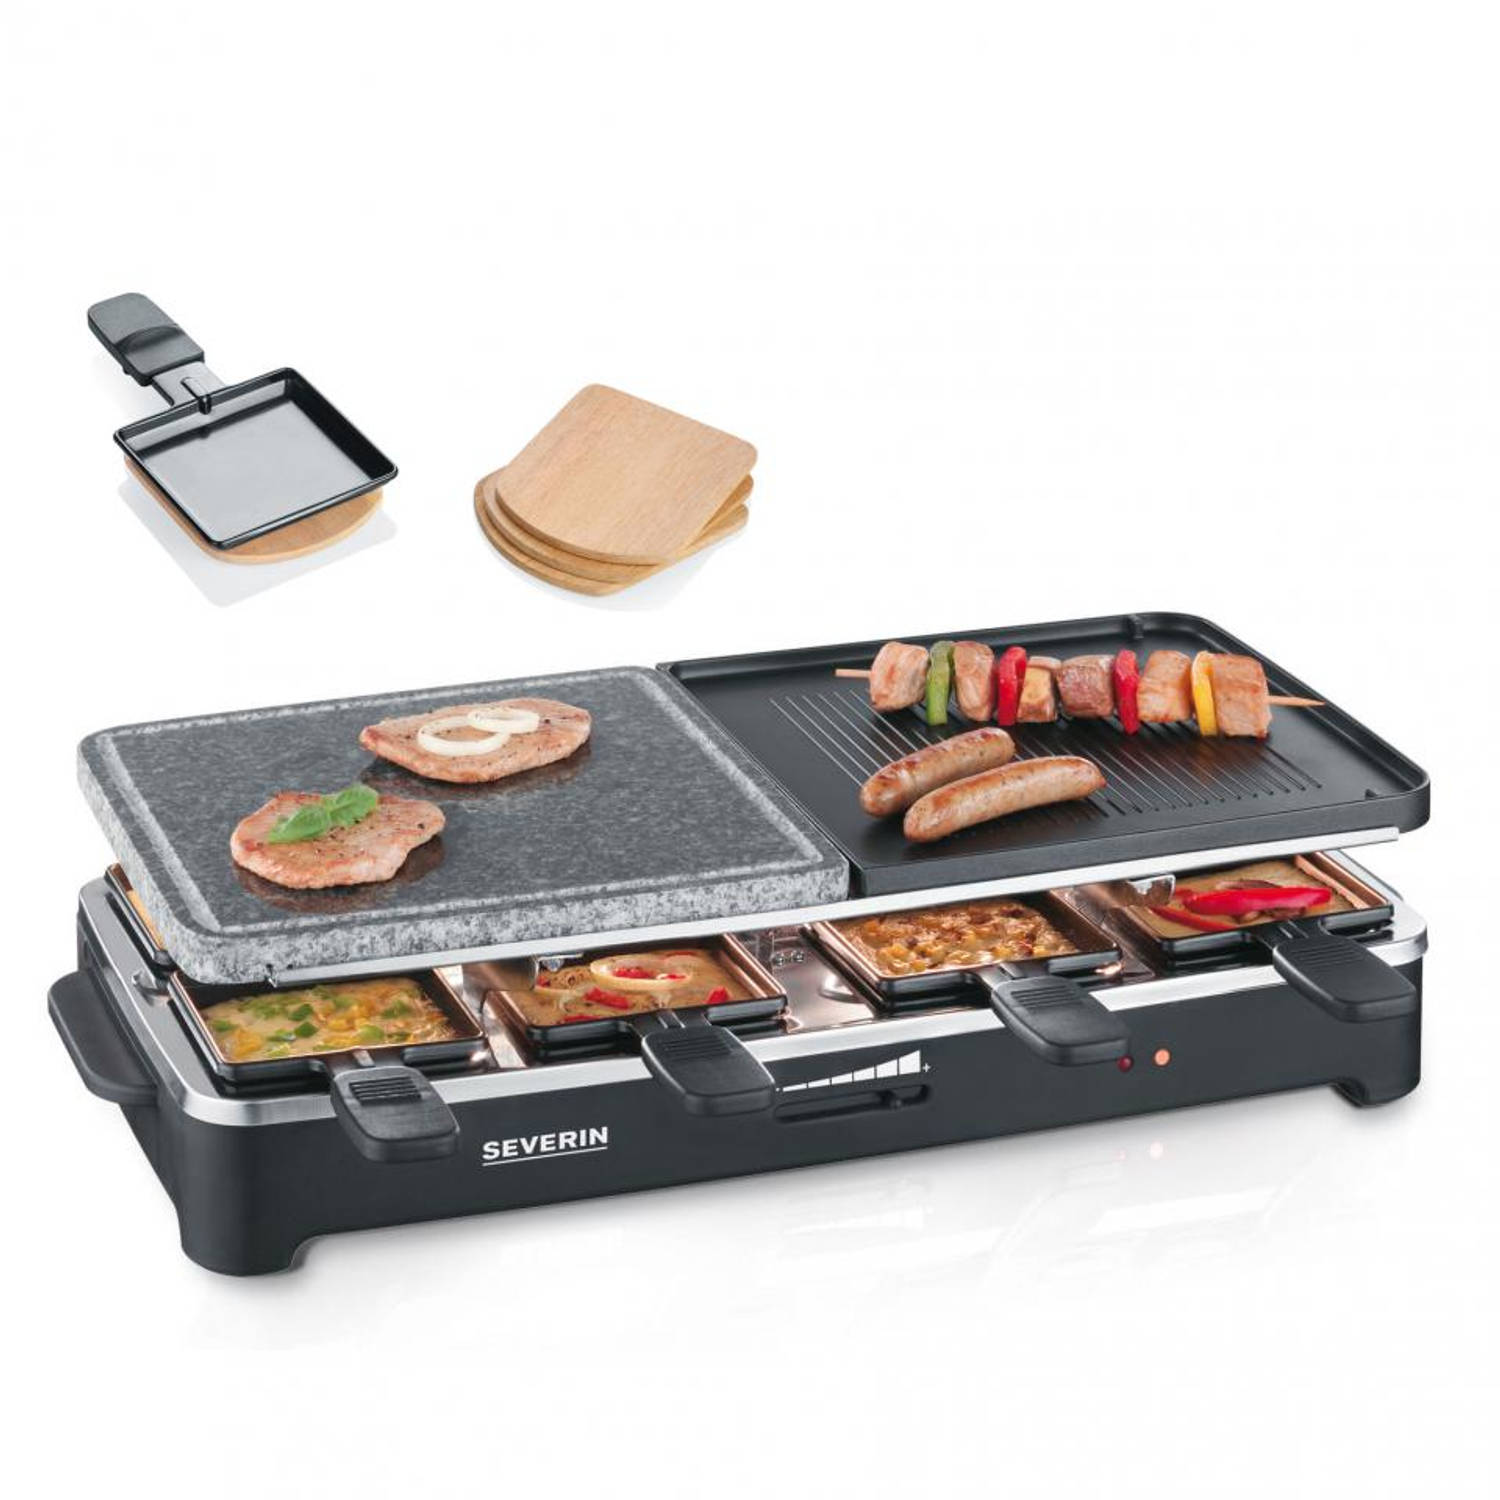 Severin raclette grill RG9474